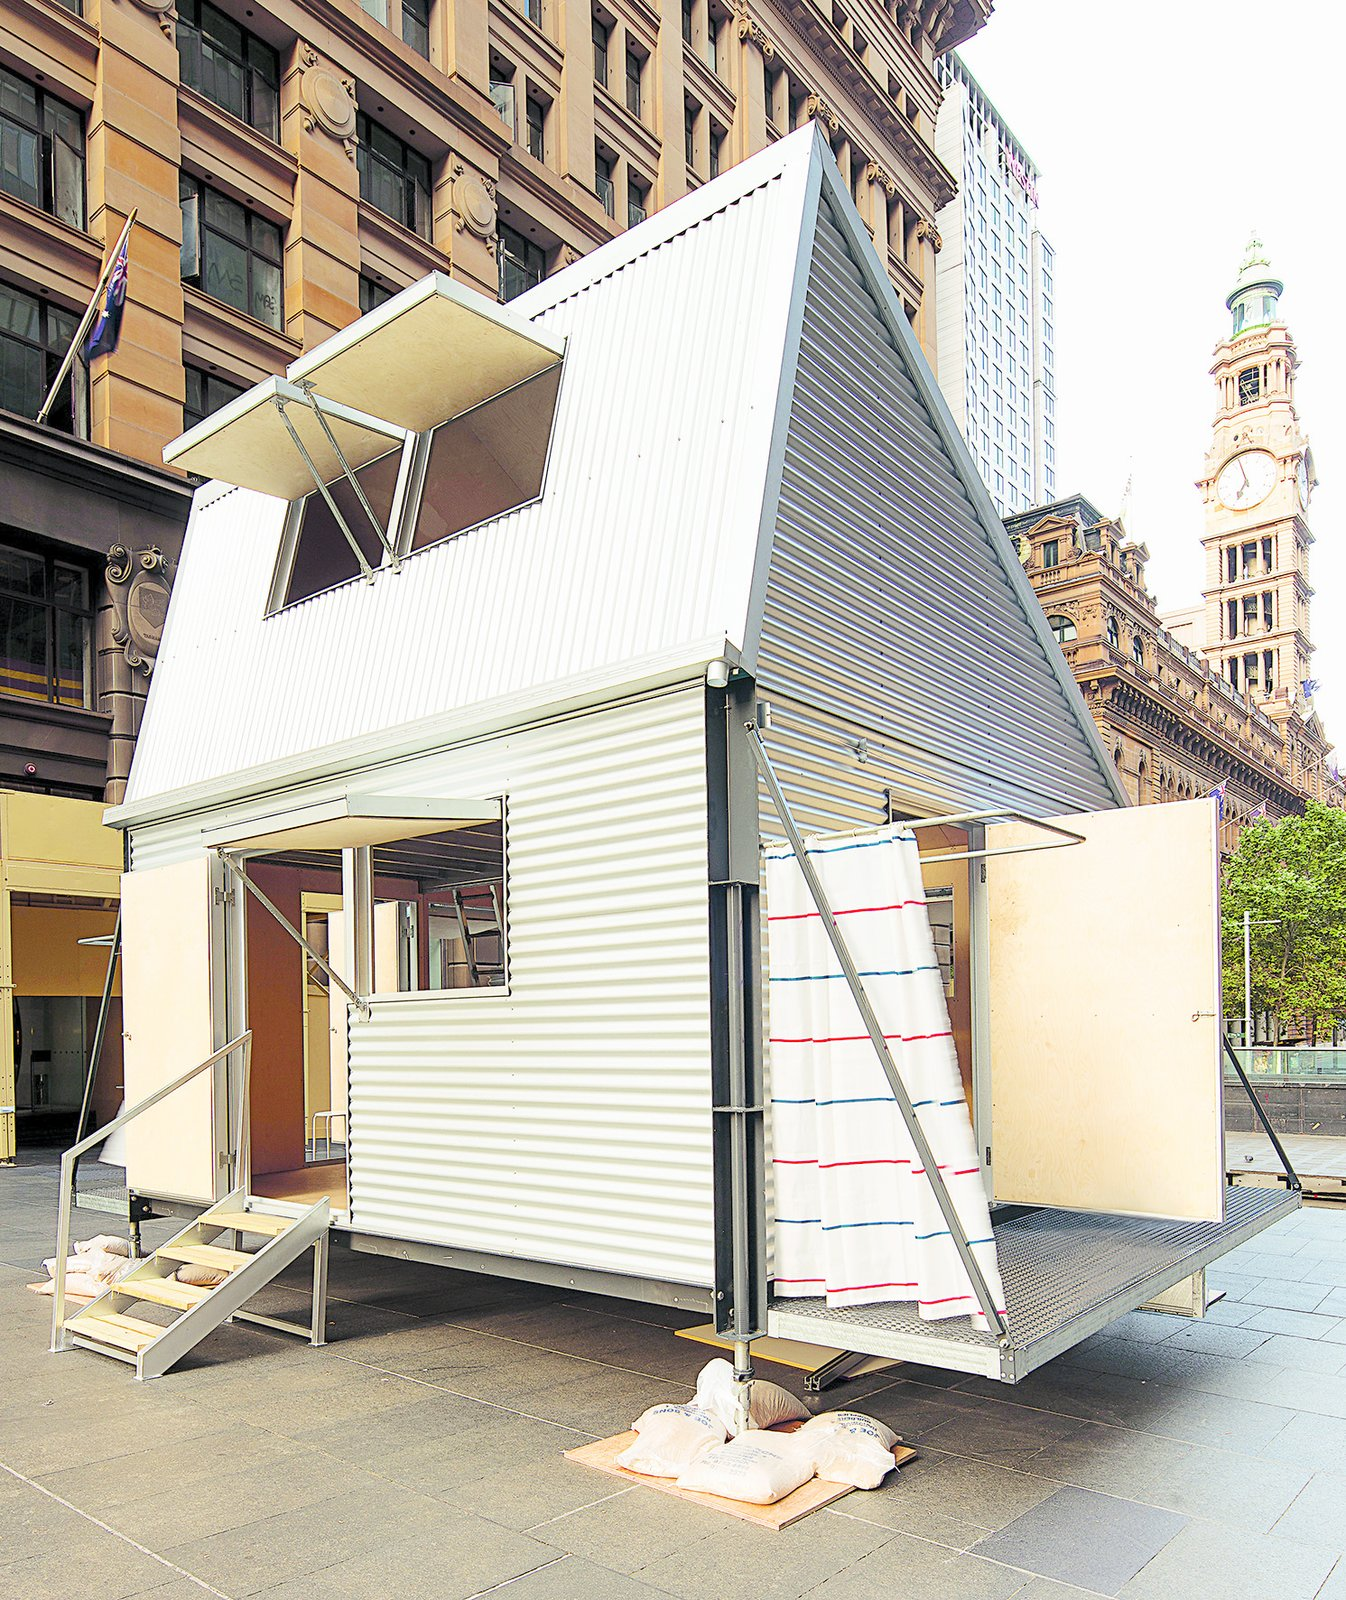 GRID, Carter Williamson Architects, 2012  Envisioned as emergency housing for after tsunamis, this steel prefab from Australia arrives flat-packed and can be assembled in four hours. With solar panels and rainwater tanks, it's possible for it to house up to 10 people in a pinch.  Seriously Tiny (and Slightly Strange) Hangouts That Push the Limits of Micro-Living by Luke Hopping